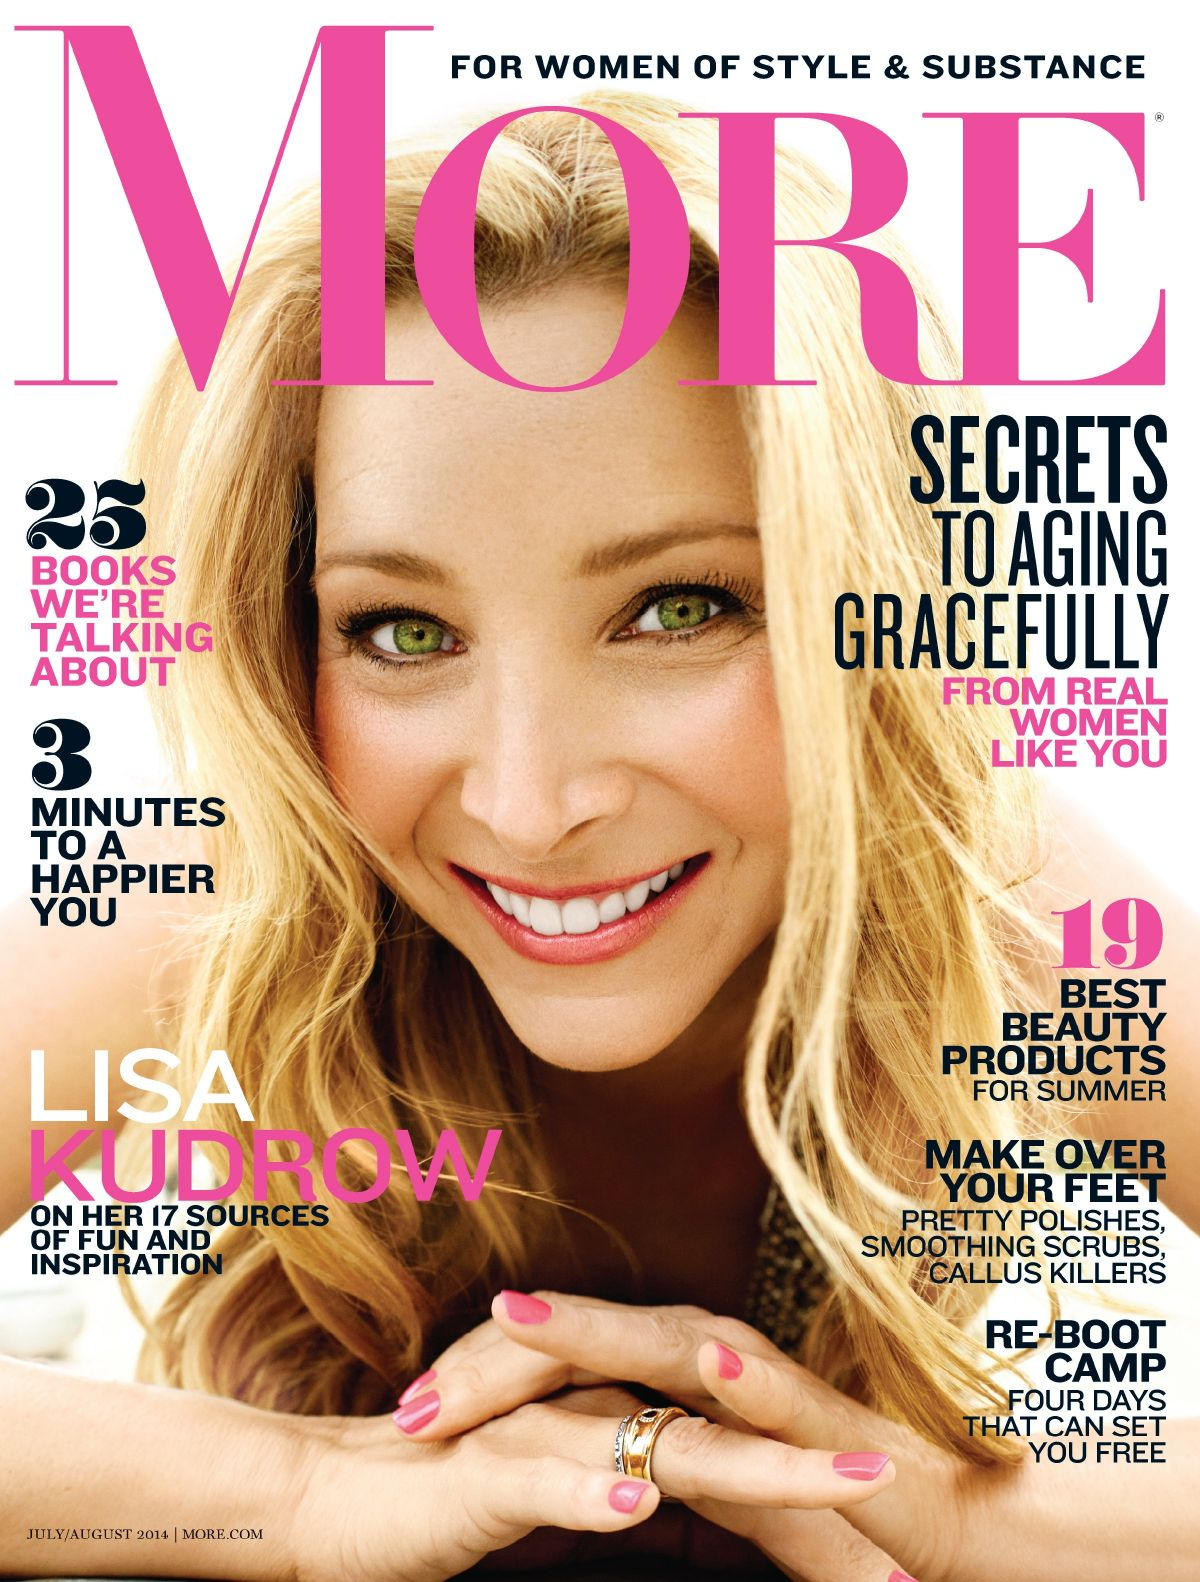 LISA KUDROW In More Magazine, July/August 2014 Issue